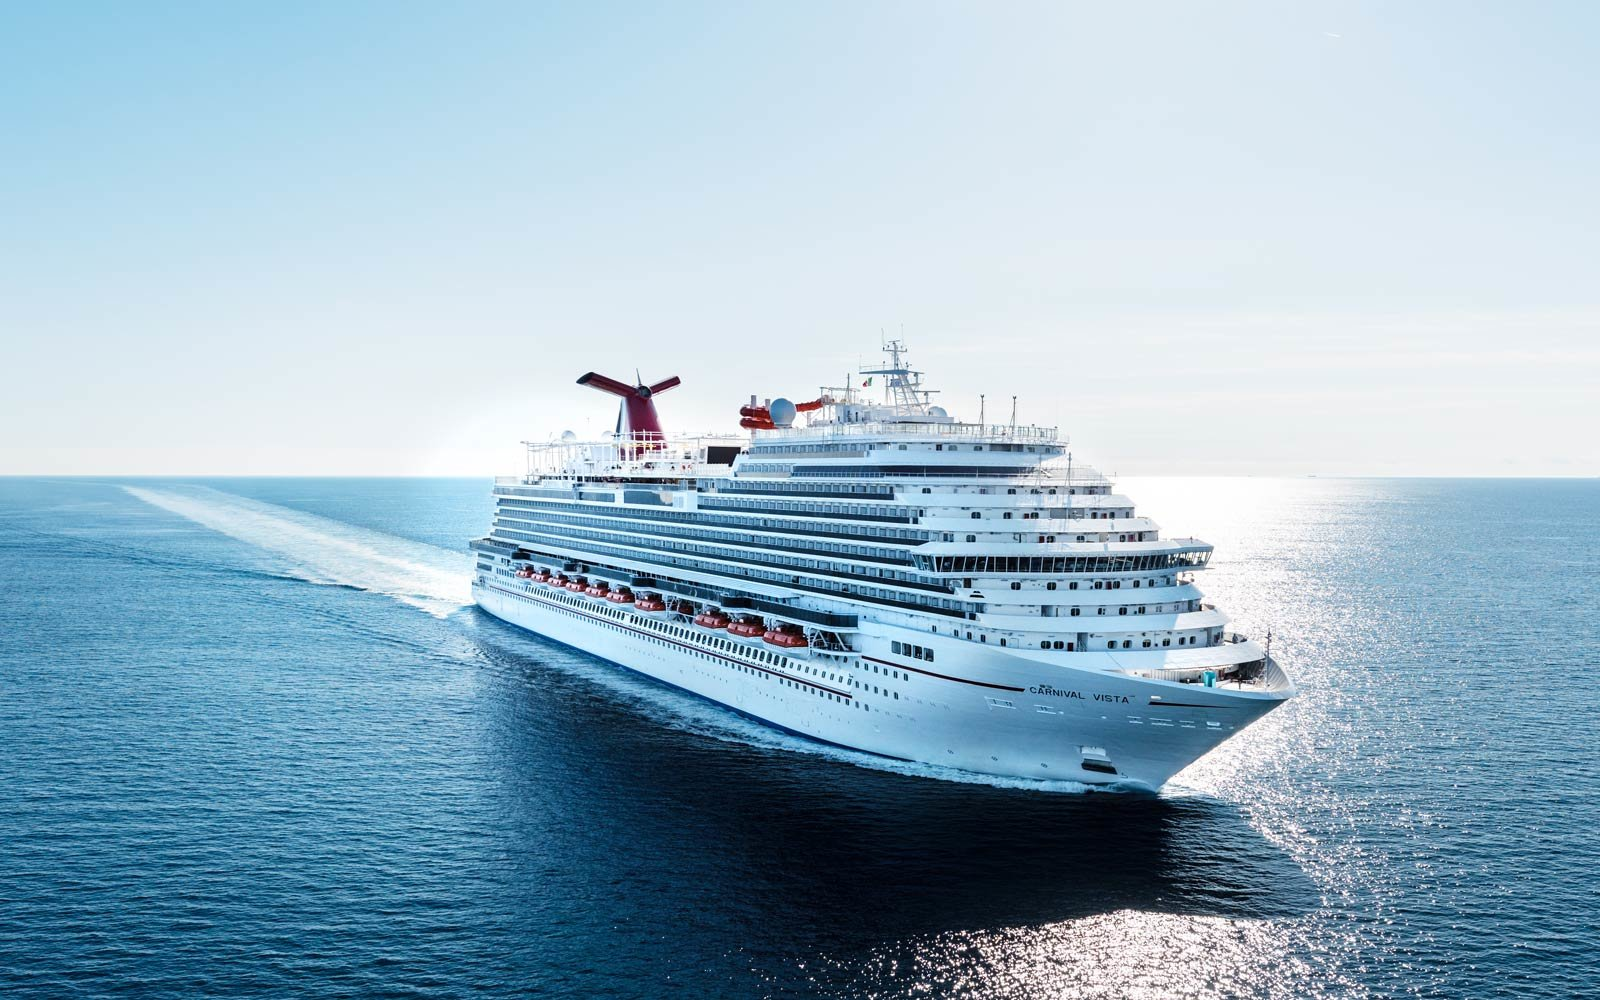 7. Carnival Cruise Line